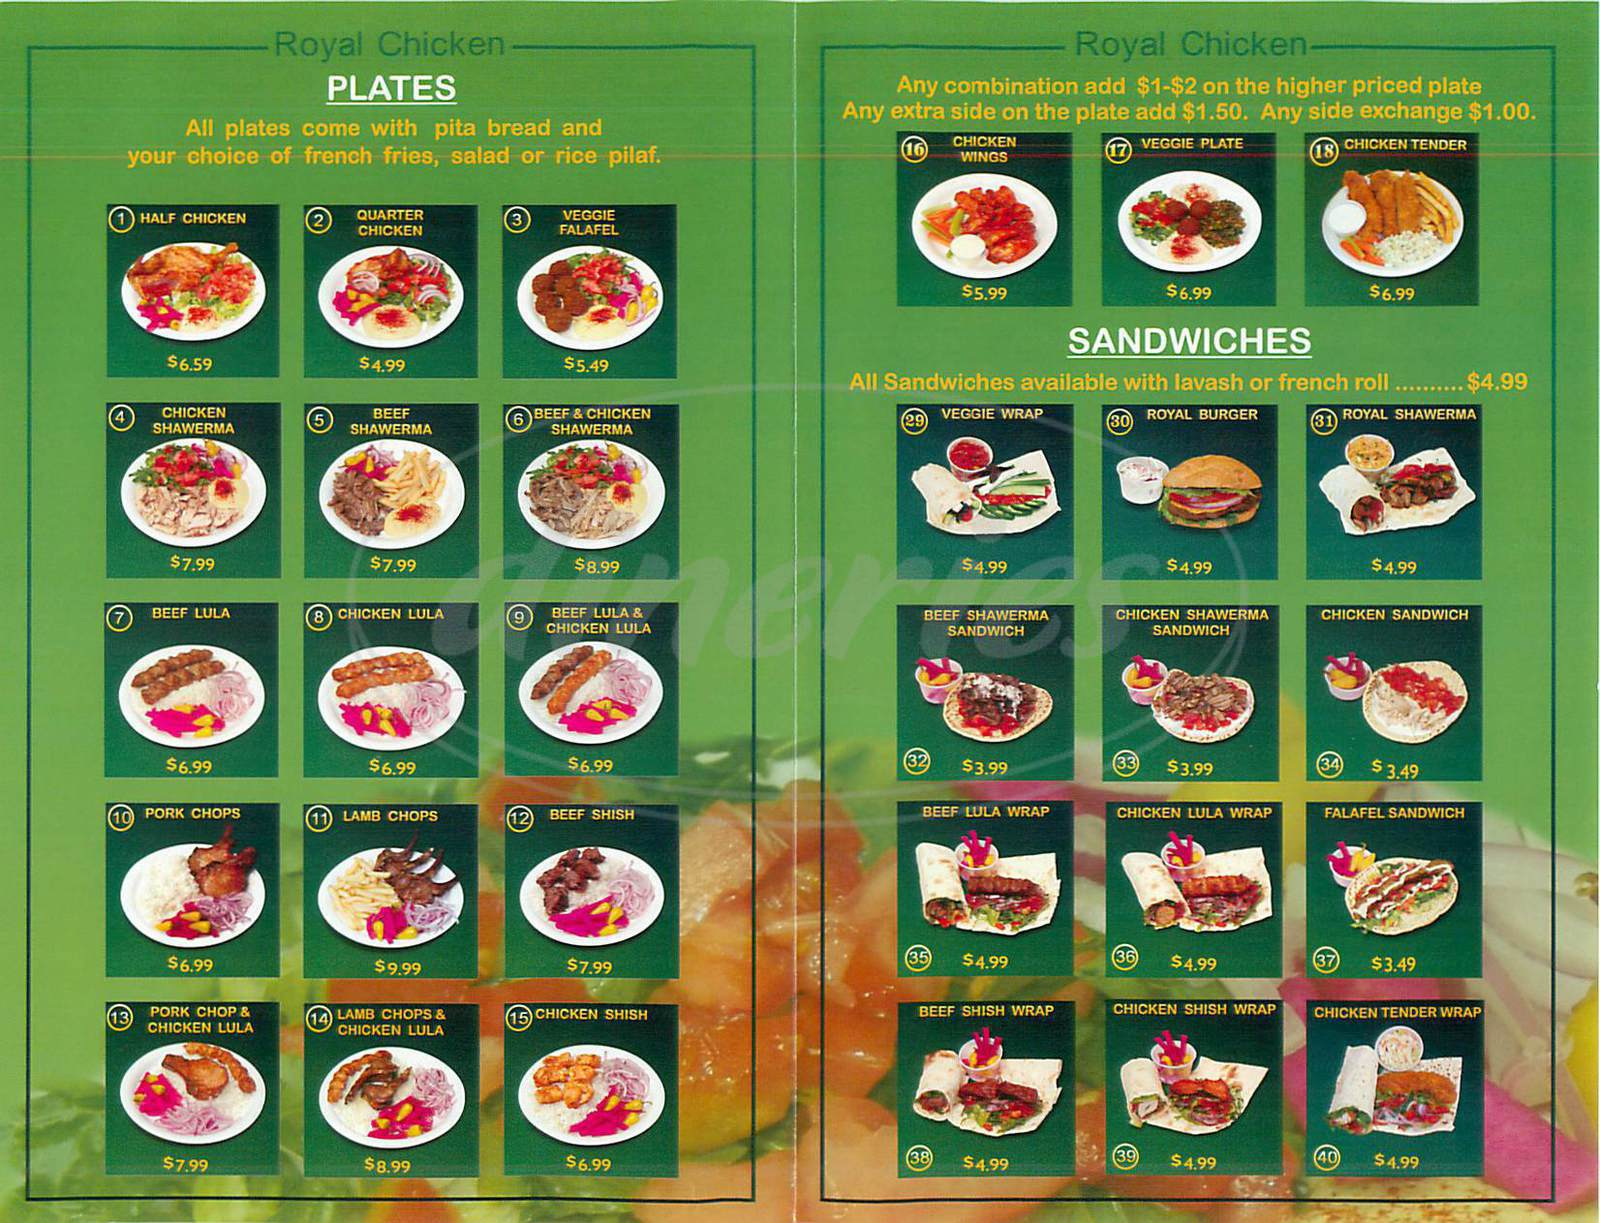 menu for Royal Chicken